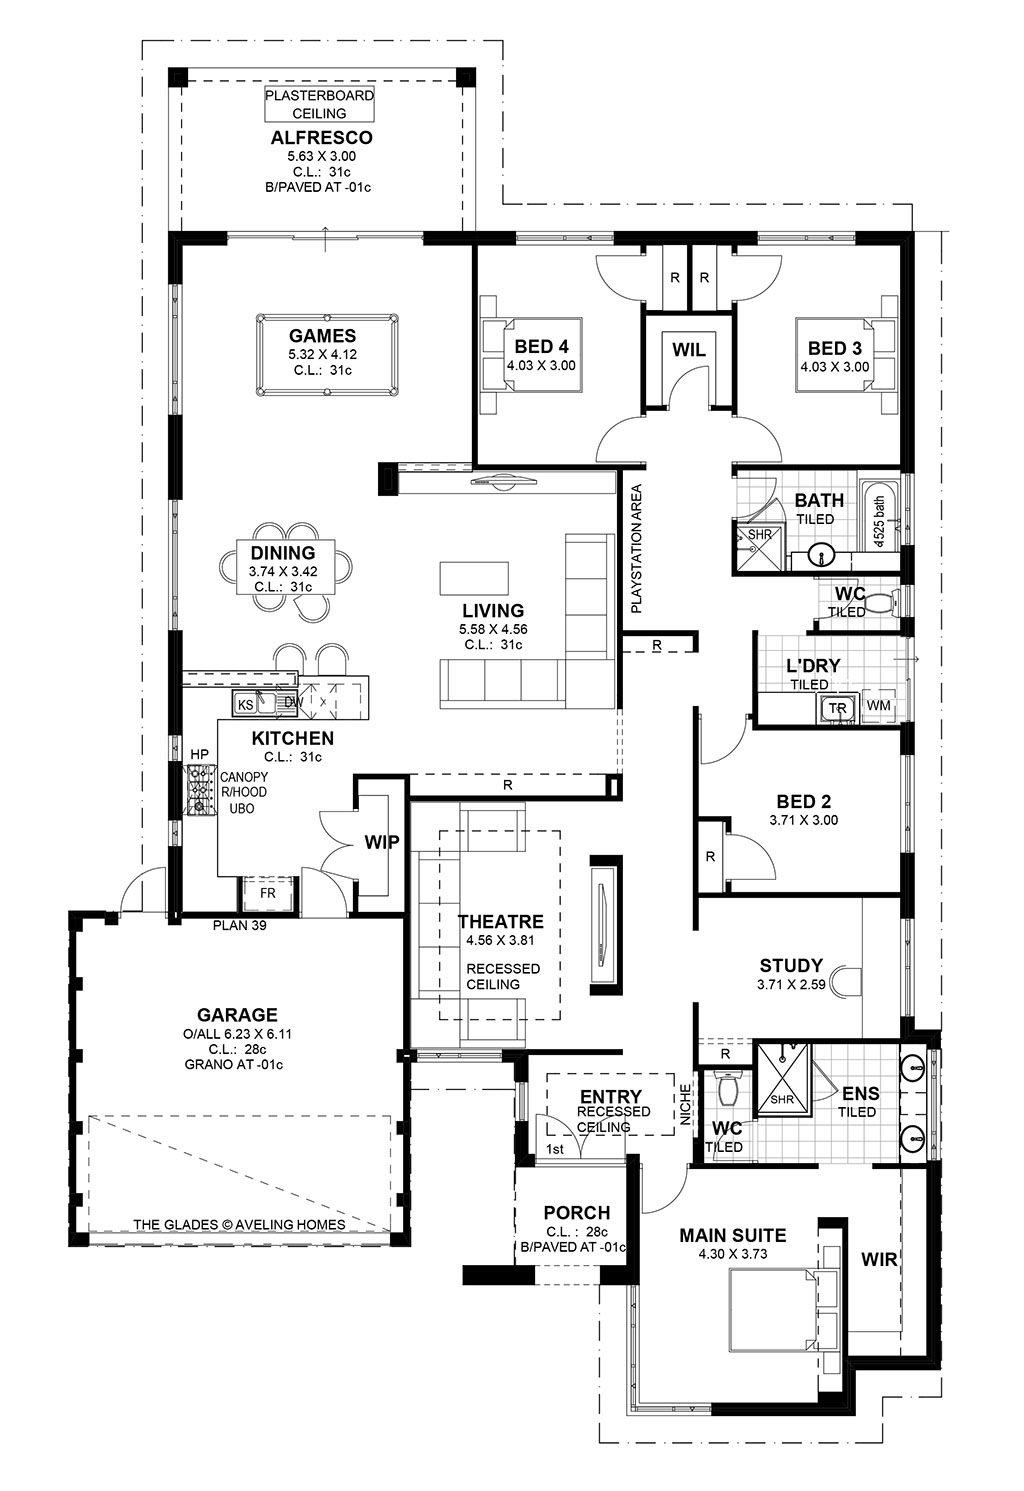 Glades S1 Custom Home Plans House Plans 4 Bedroom House Plans